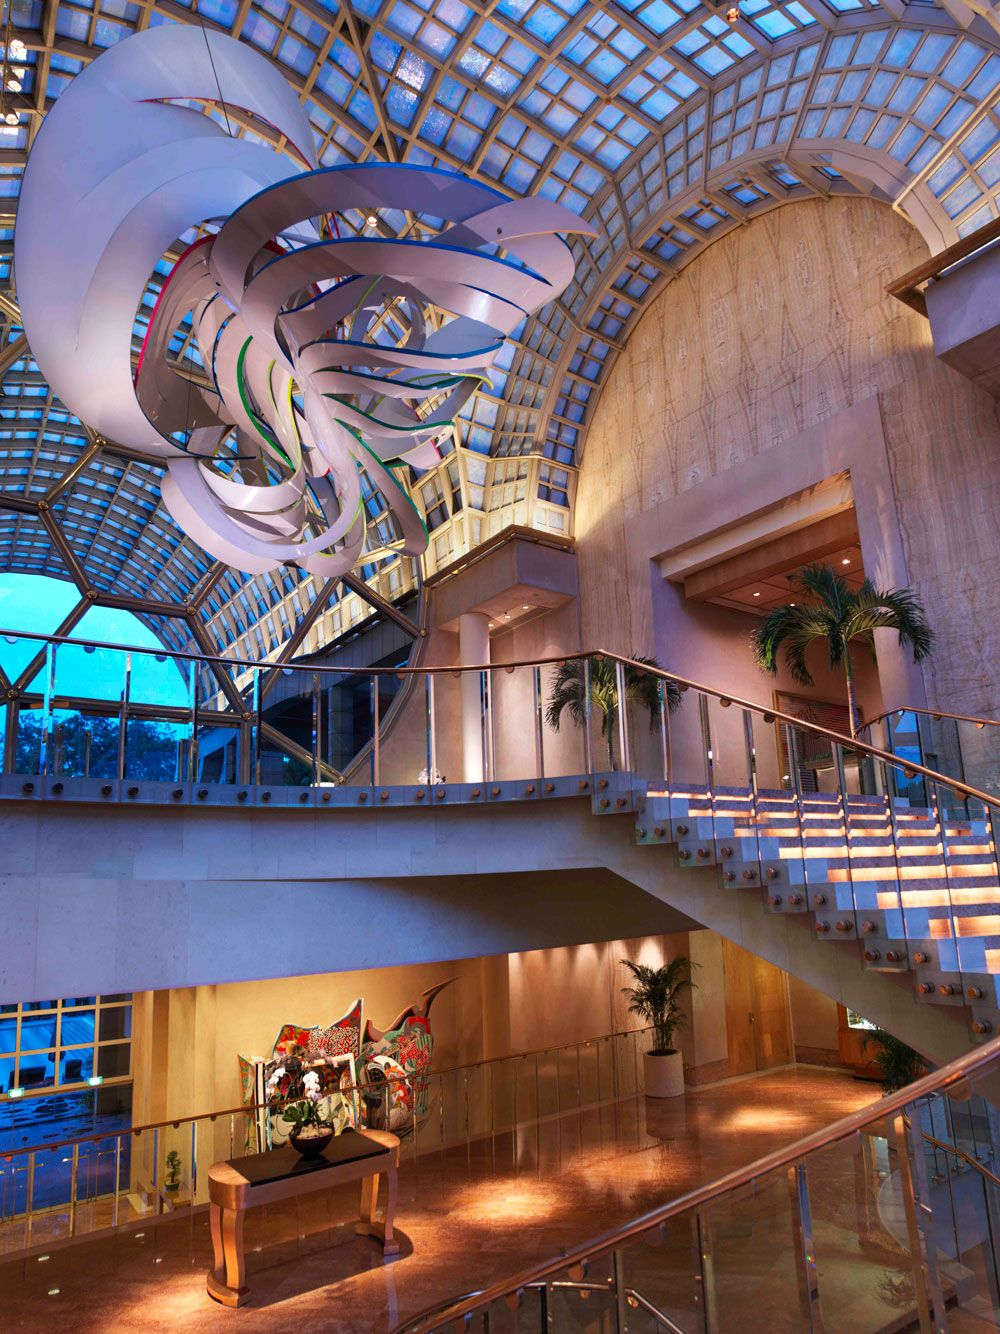 7 Star Hotel Rooms: The Ritz Carlton Millenia Singapore (With Images